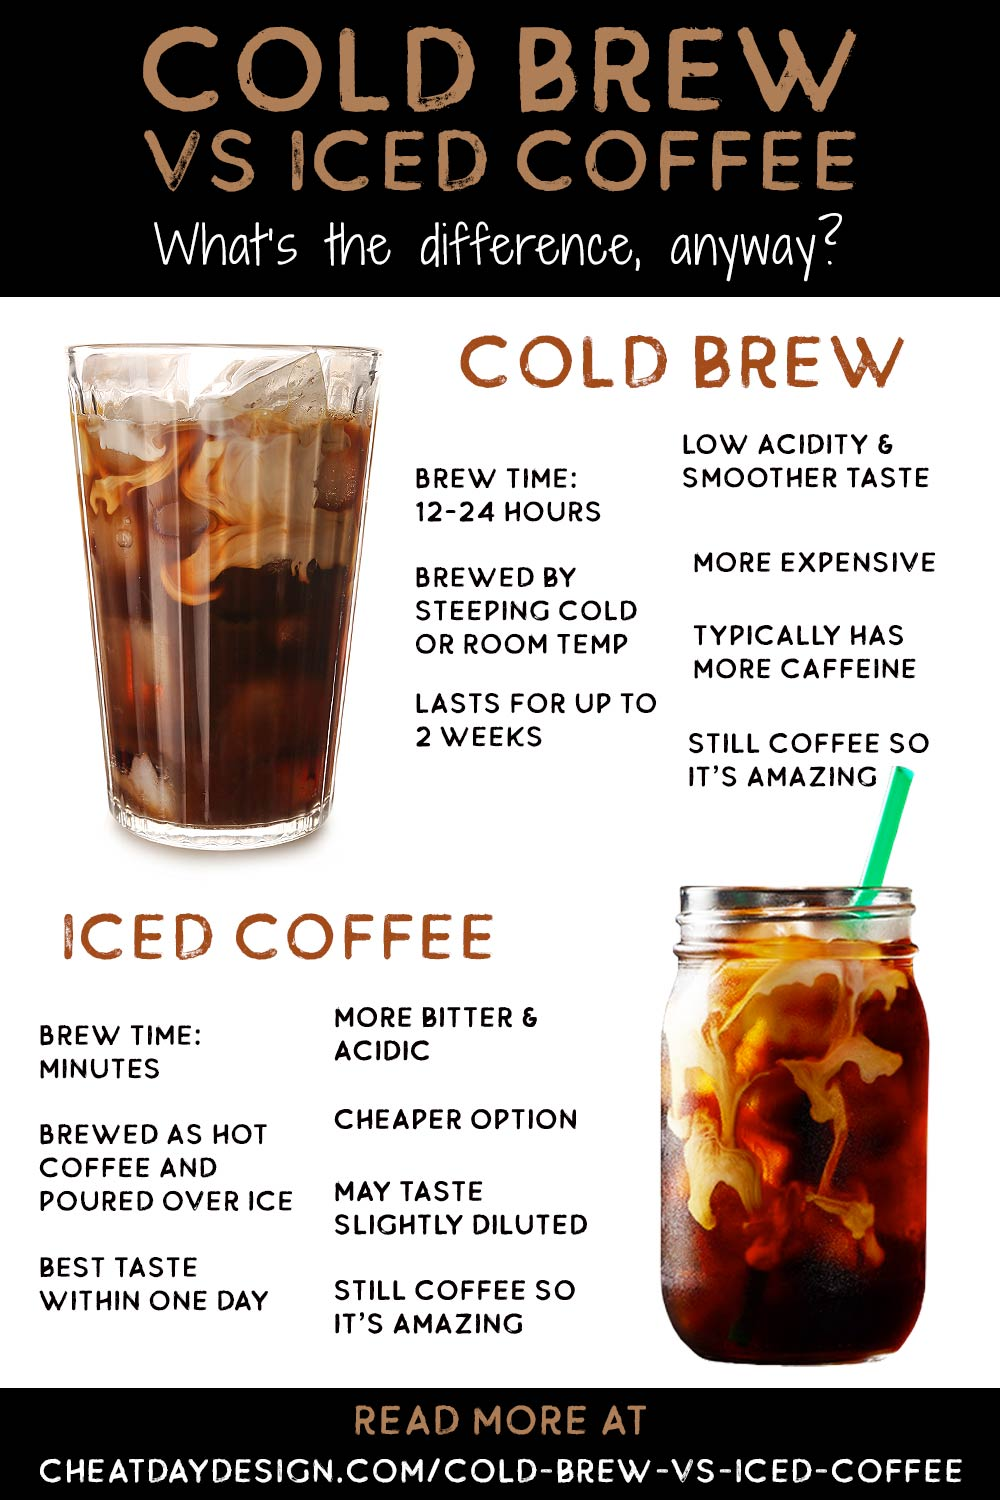 Cold Brew vs Iced Coffee